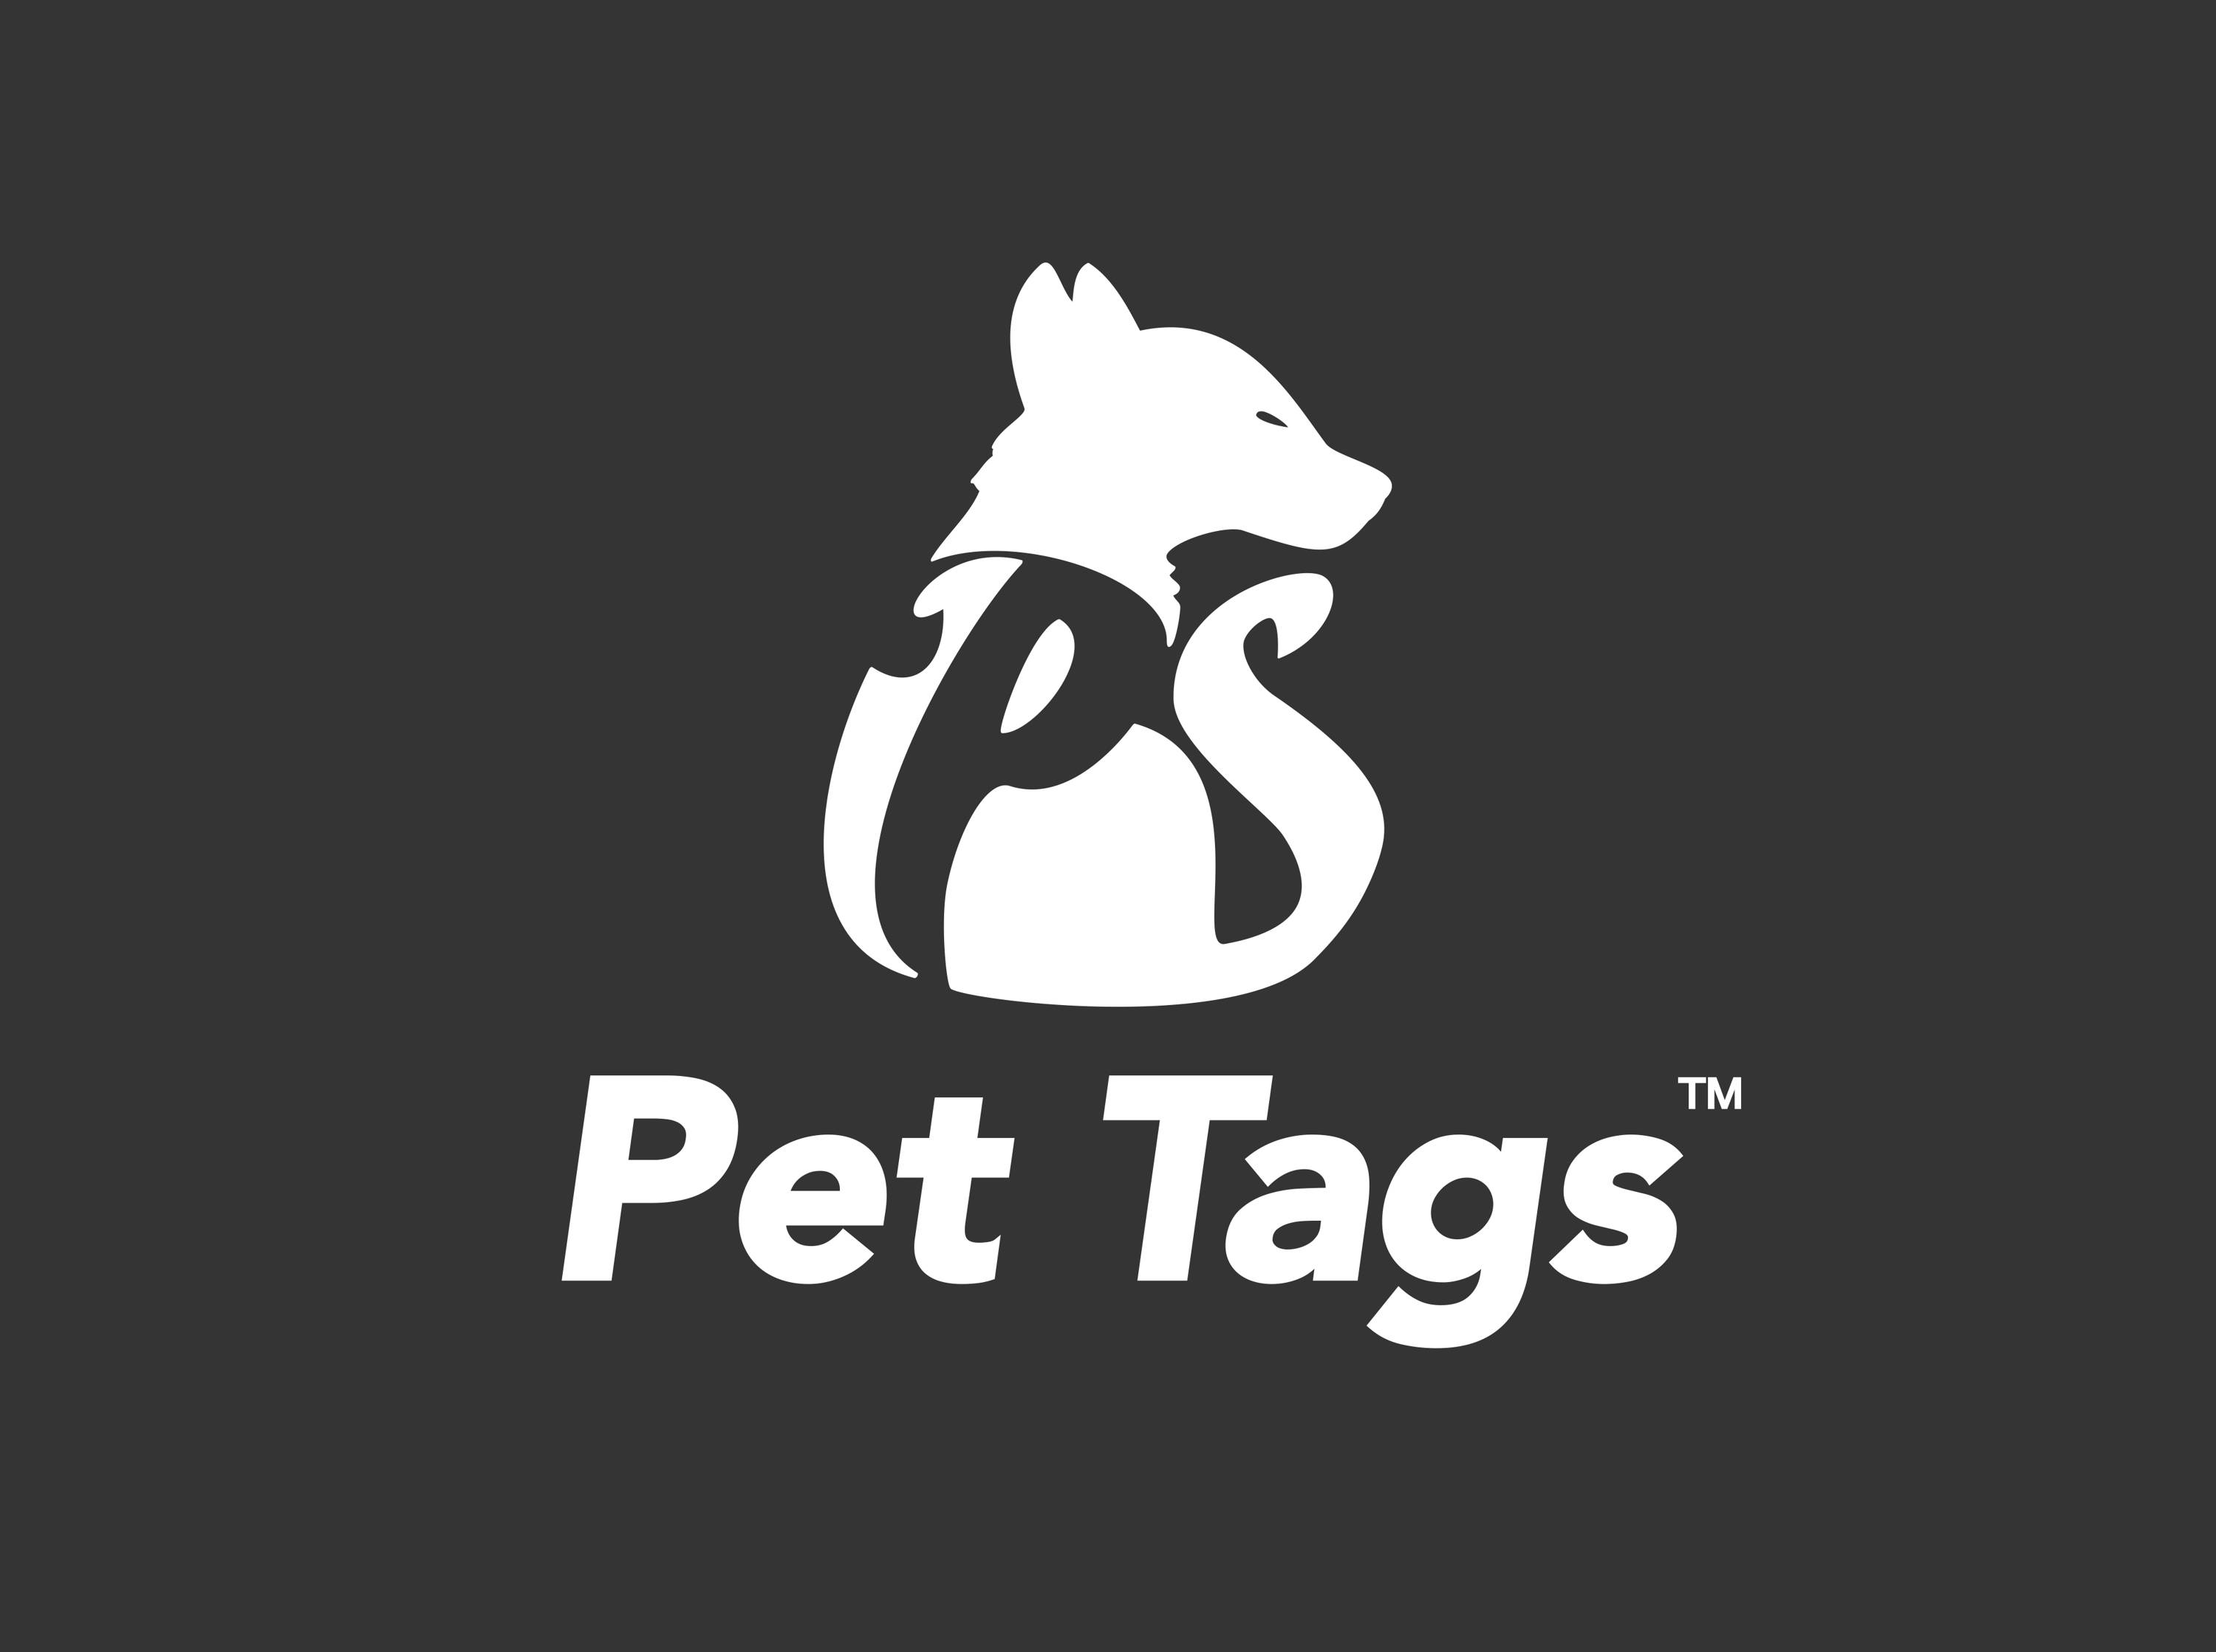 Portable dog poo holder logo